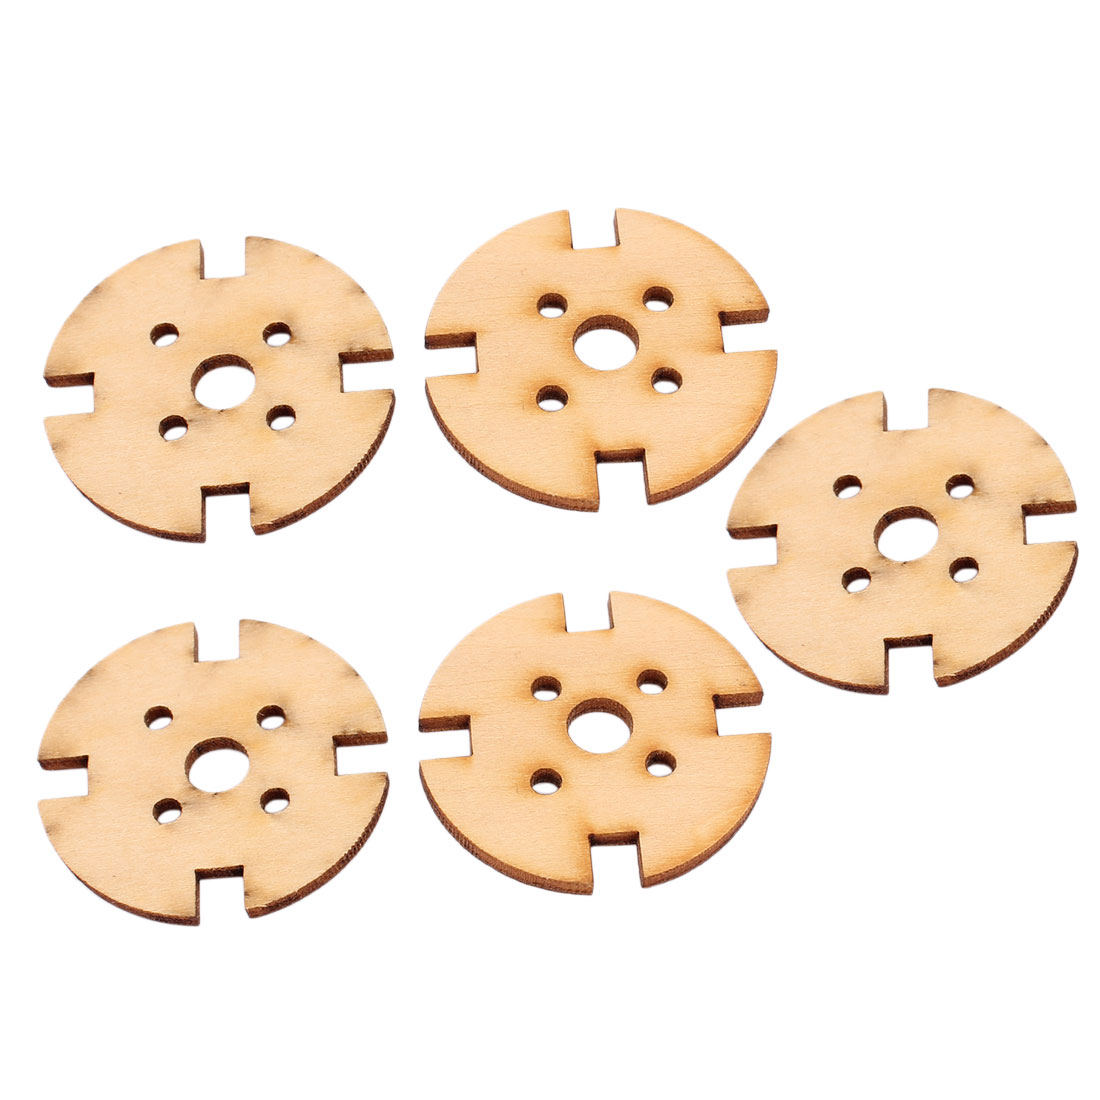 5pcs Round Wooden Mount 40mm for RC Model Airplane 2212 2208 Brushless Motor